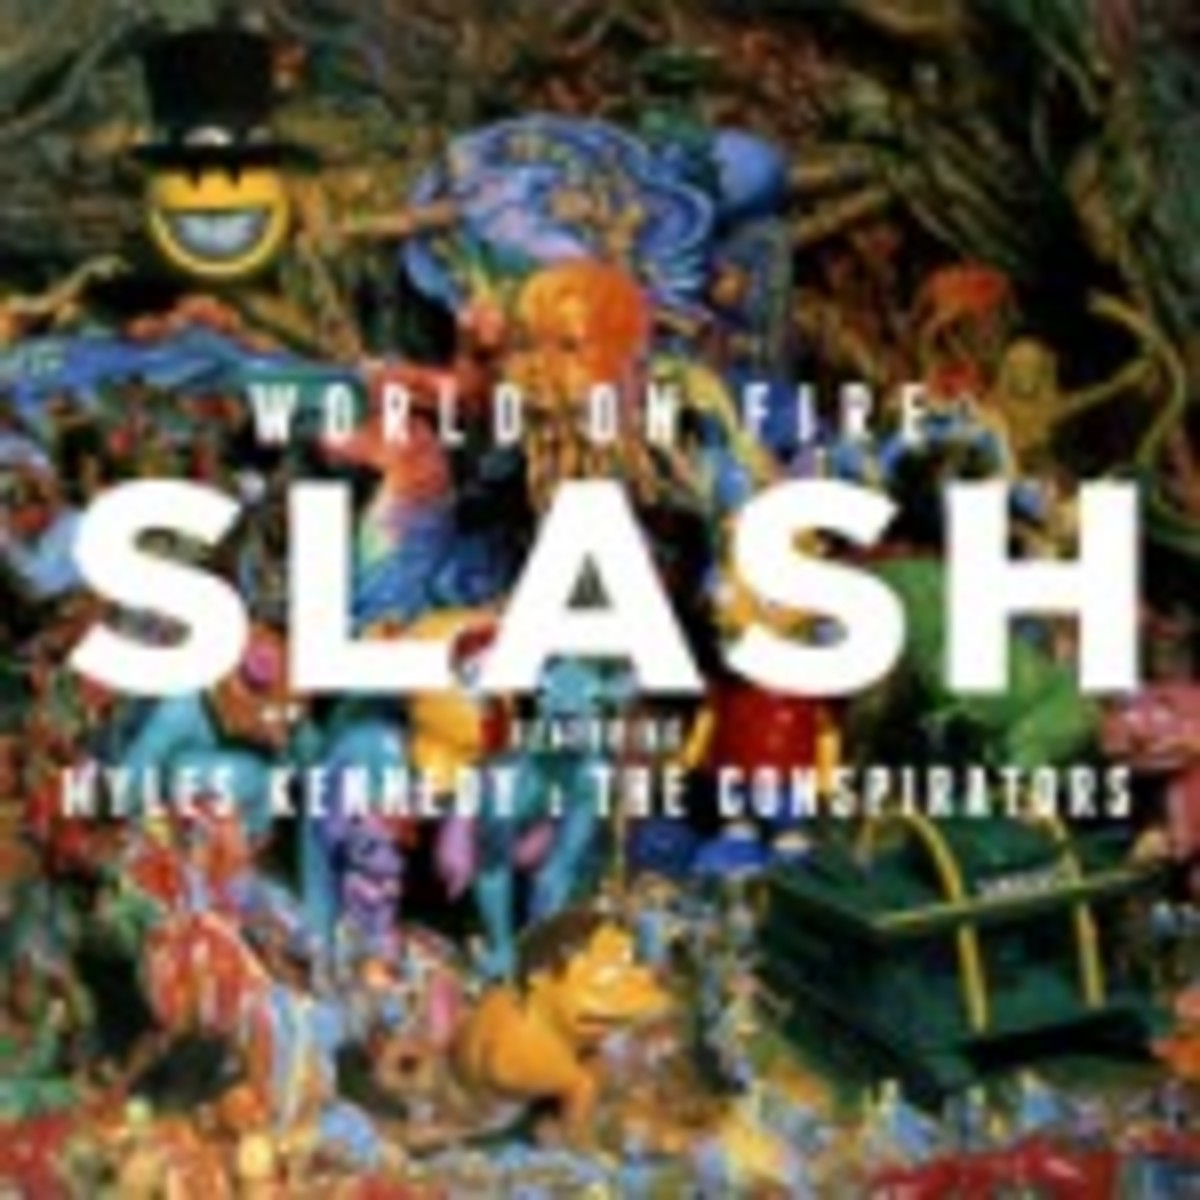 World on Fire by Slash featuring Myles Kennedy and The Conspirators